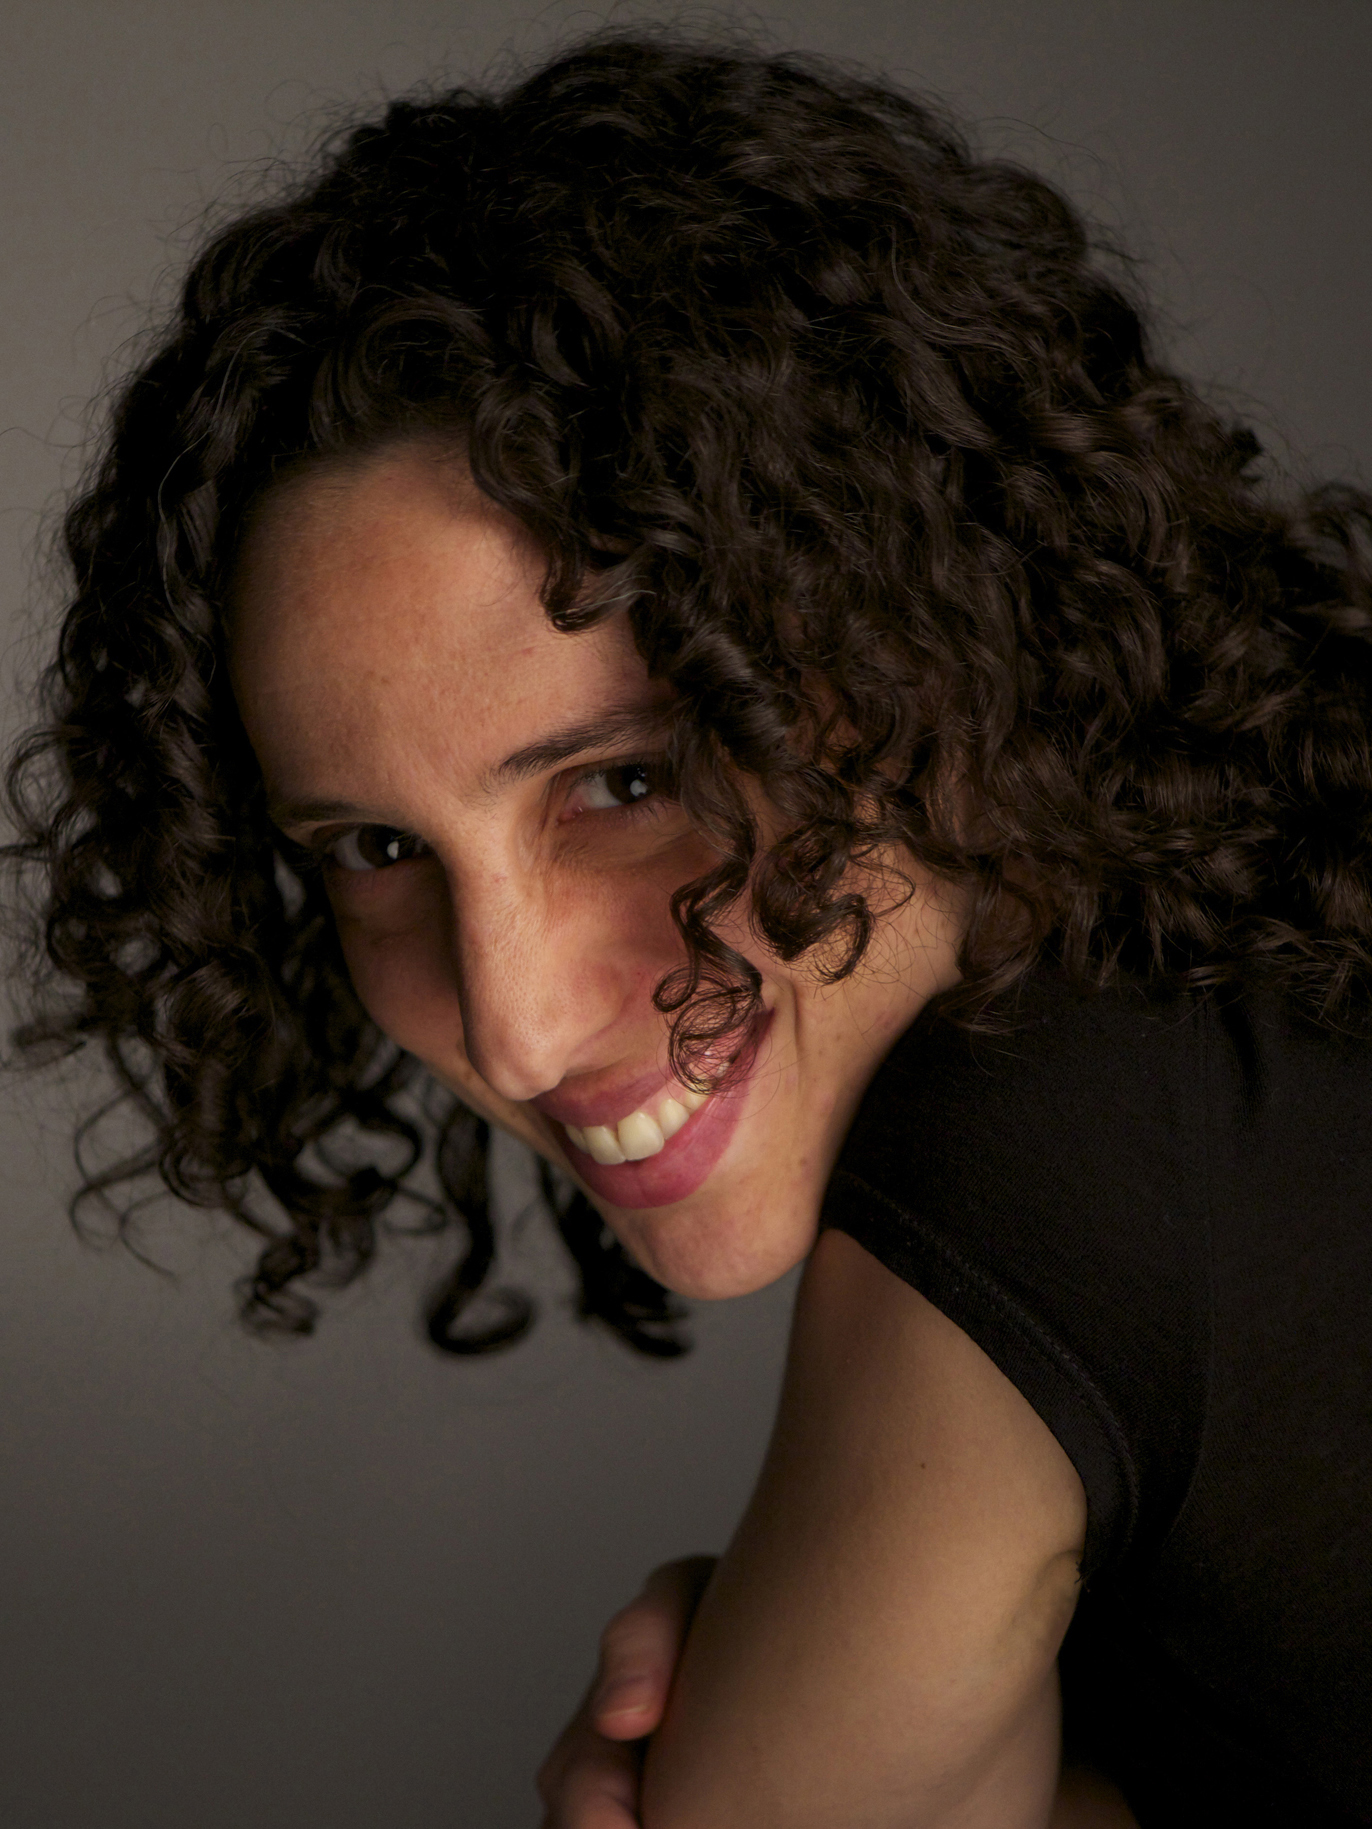 Director Ela Thier, Photograph by Milton Kam